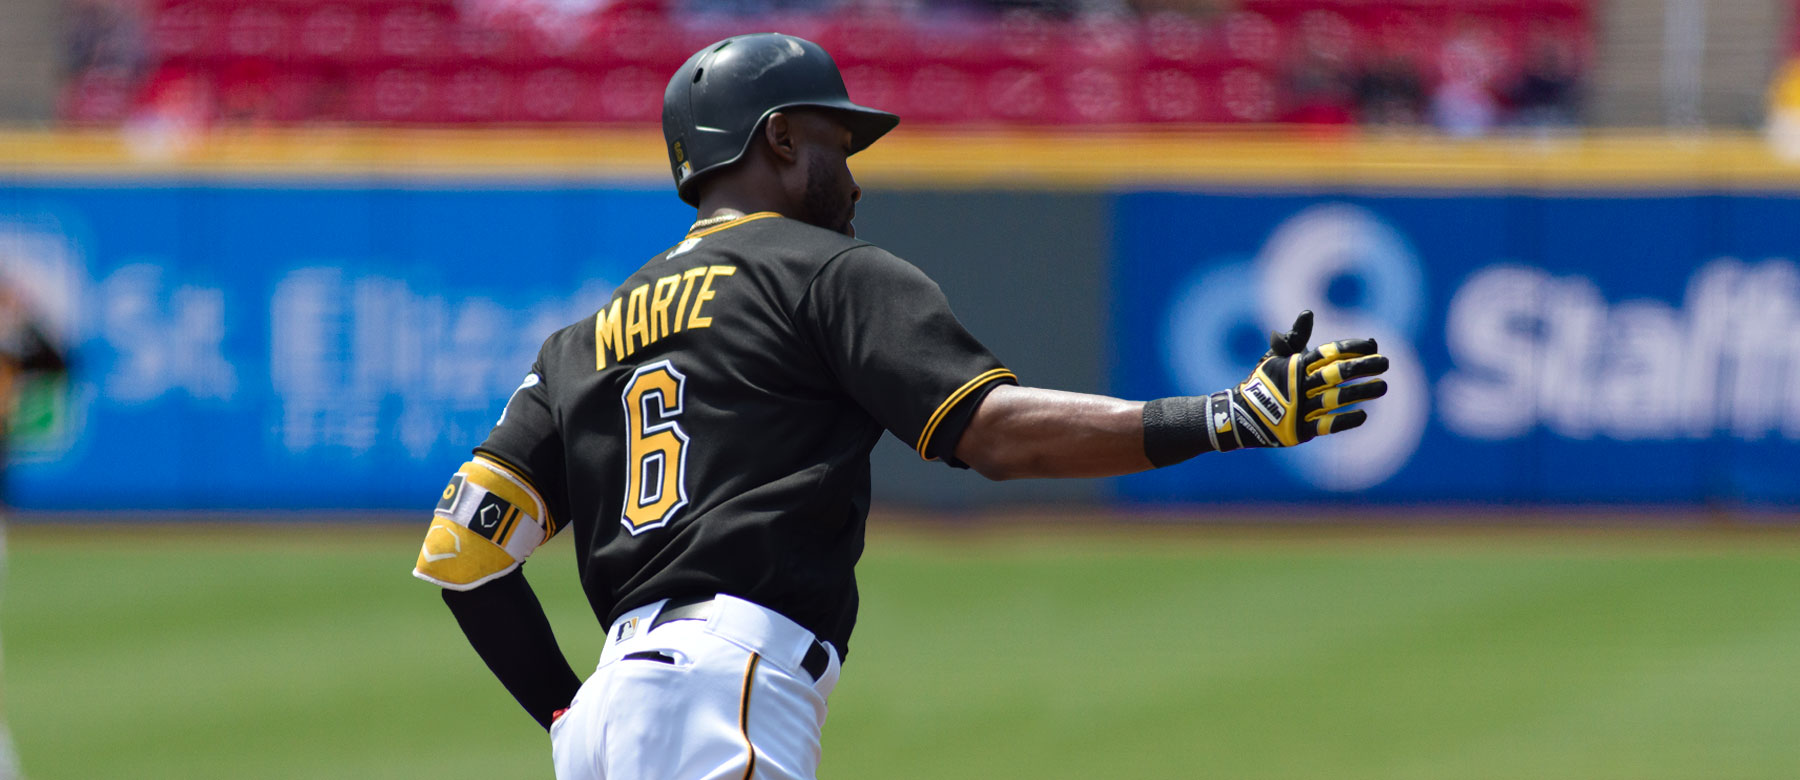 Could the Reds be a good fit for Starling Marte?